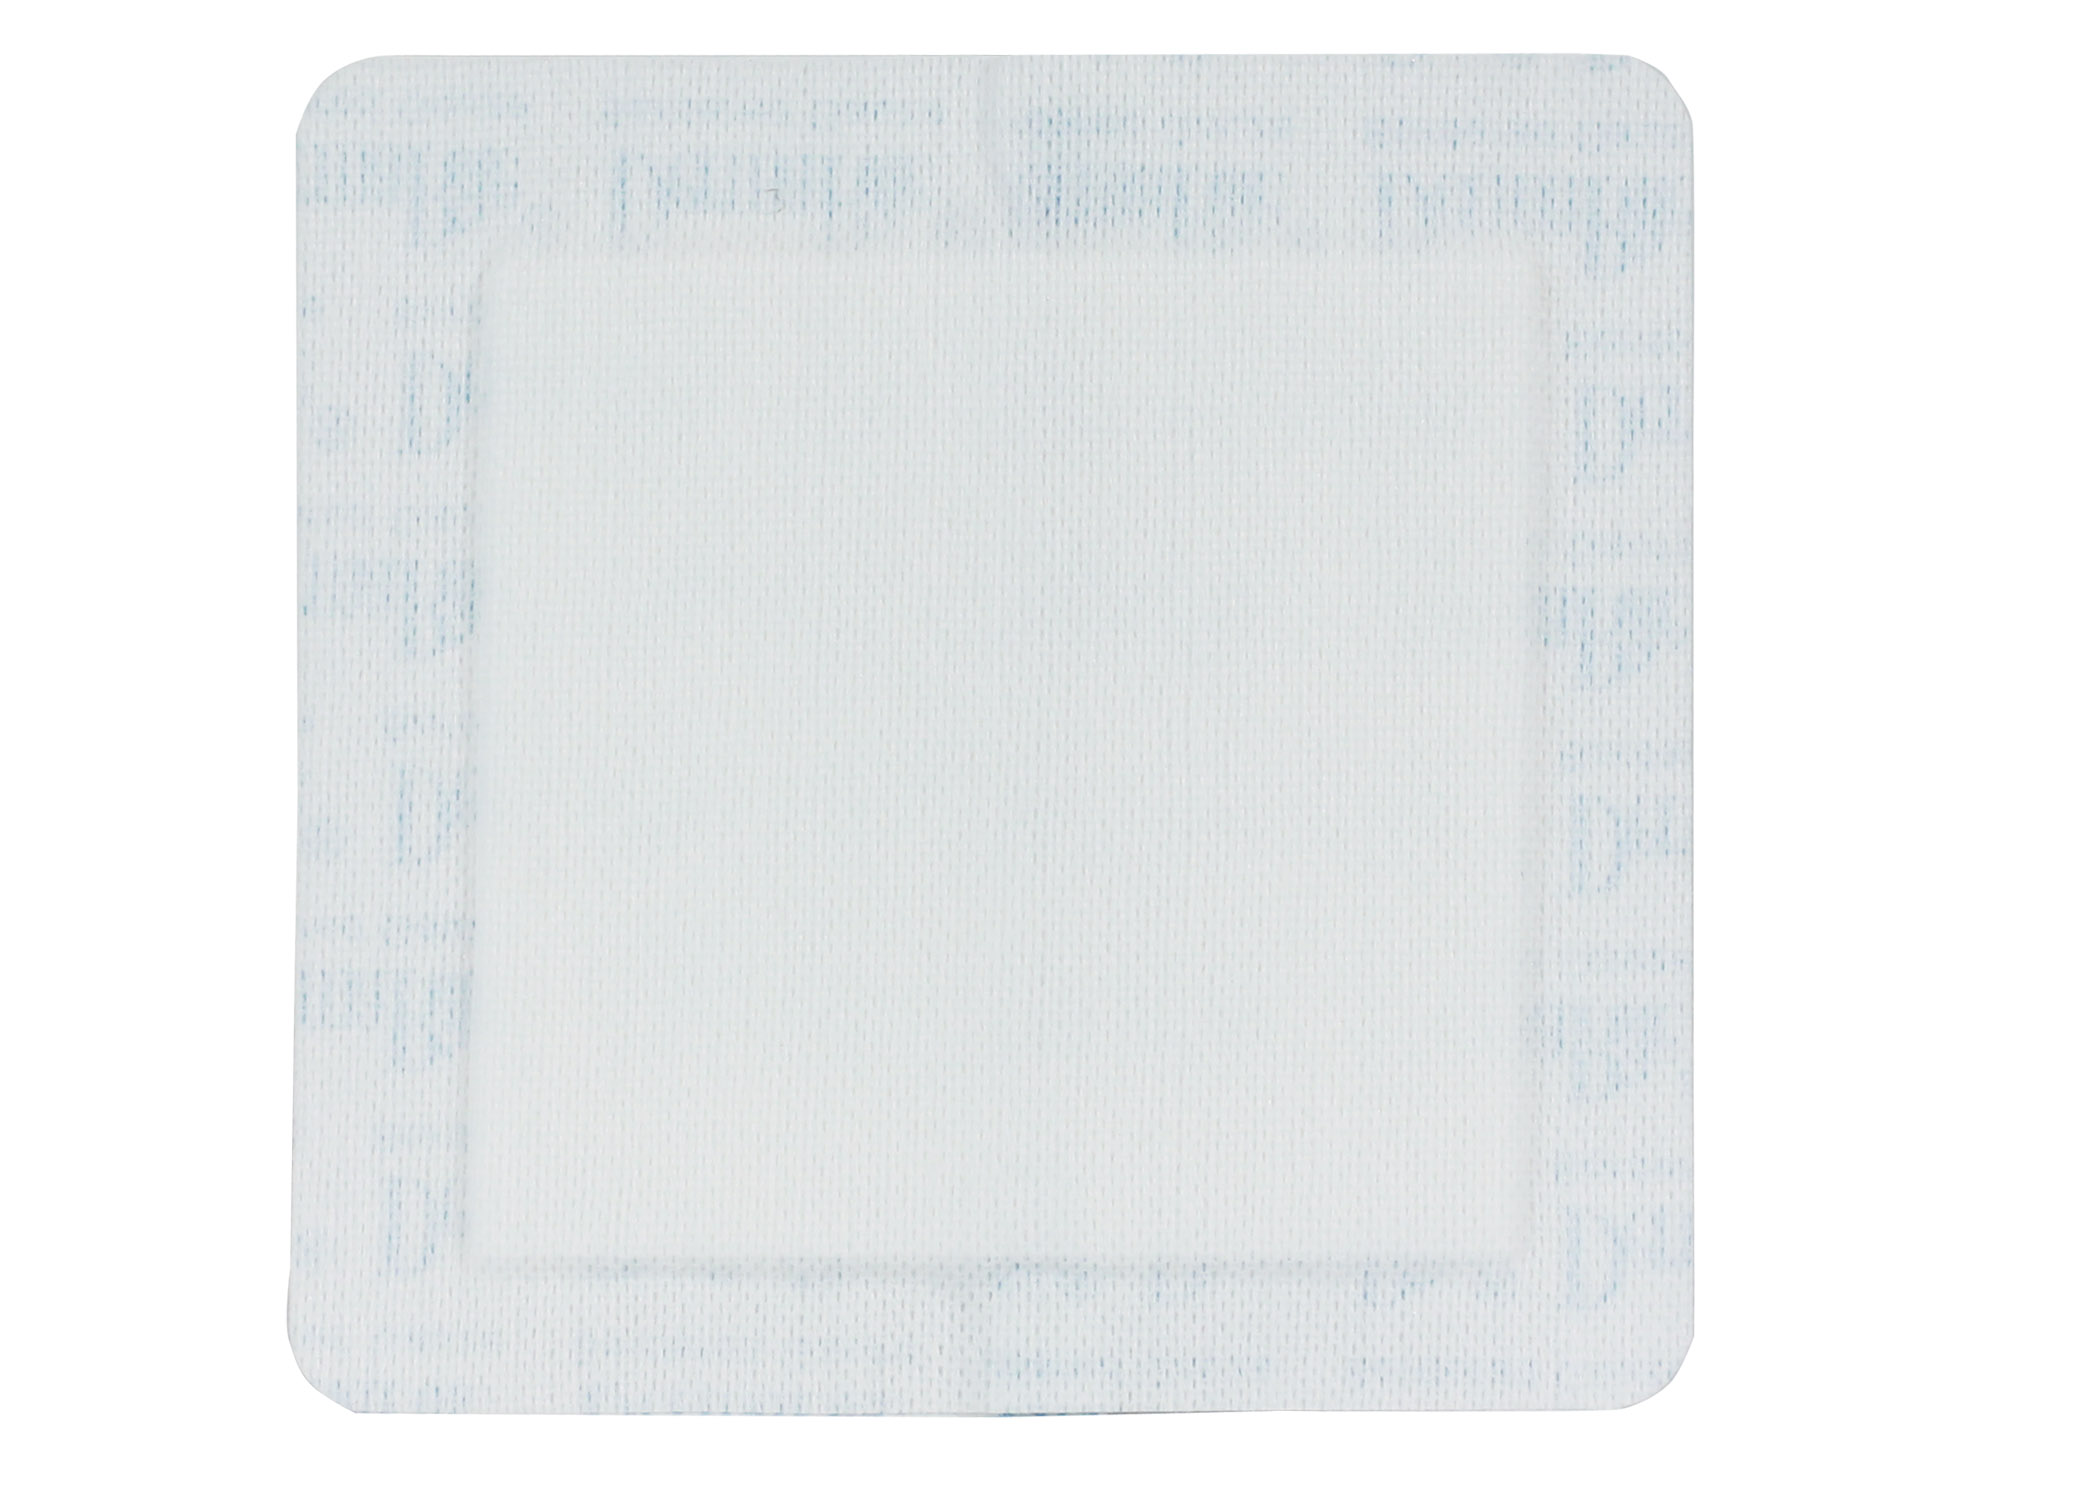 sterile bordered gauze dressing adhesive wound dressing for